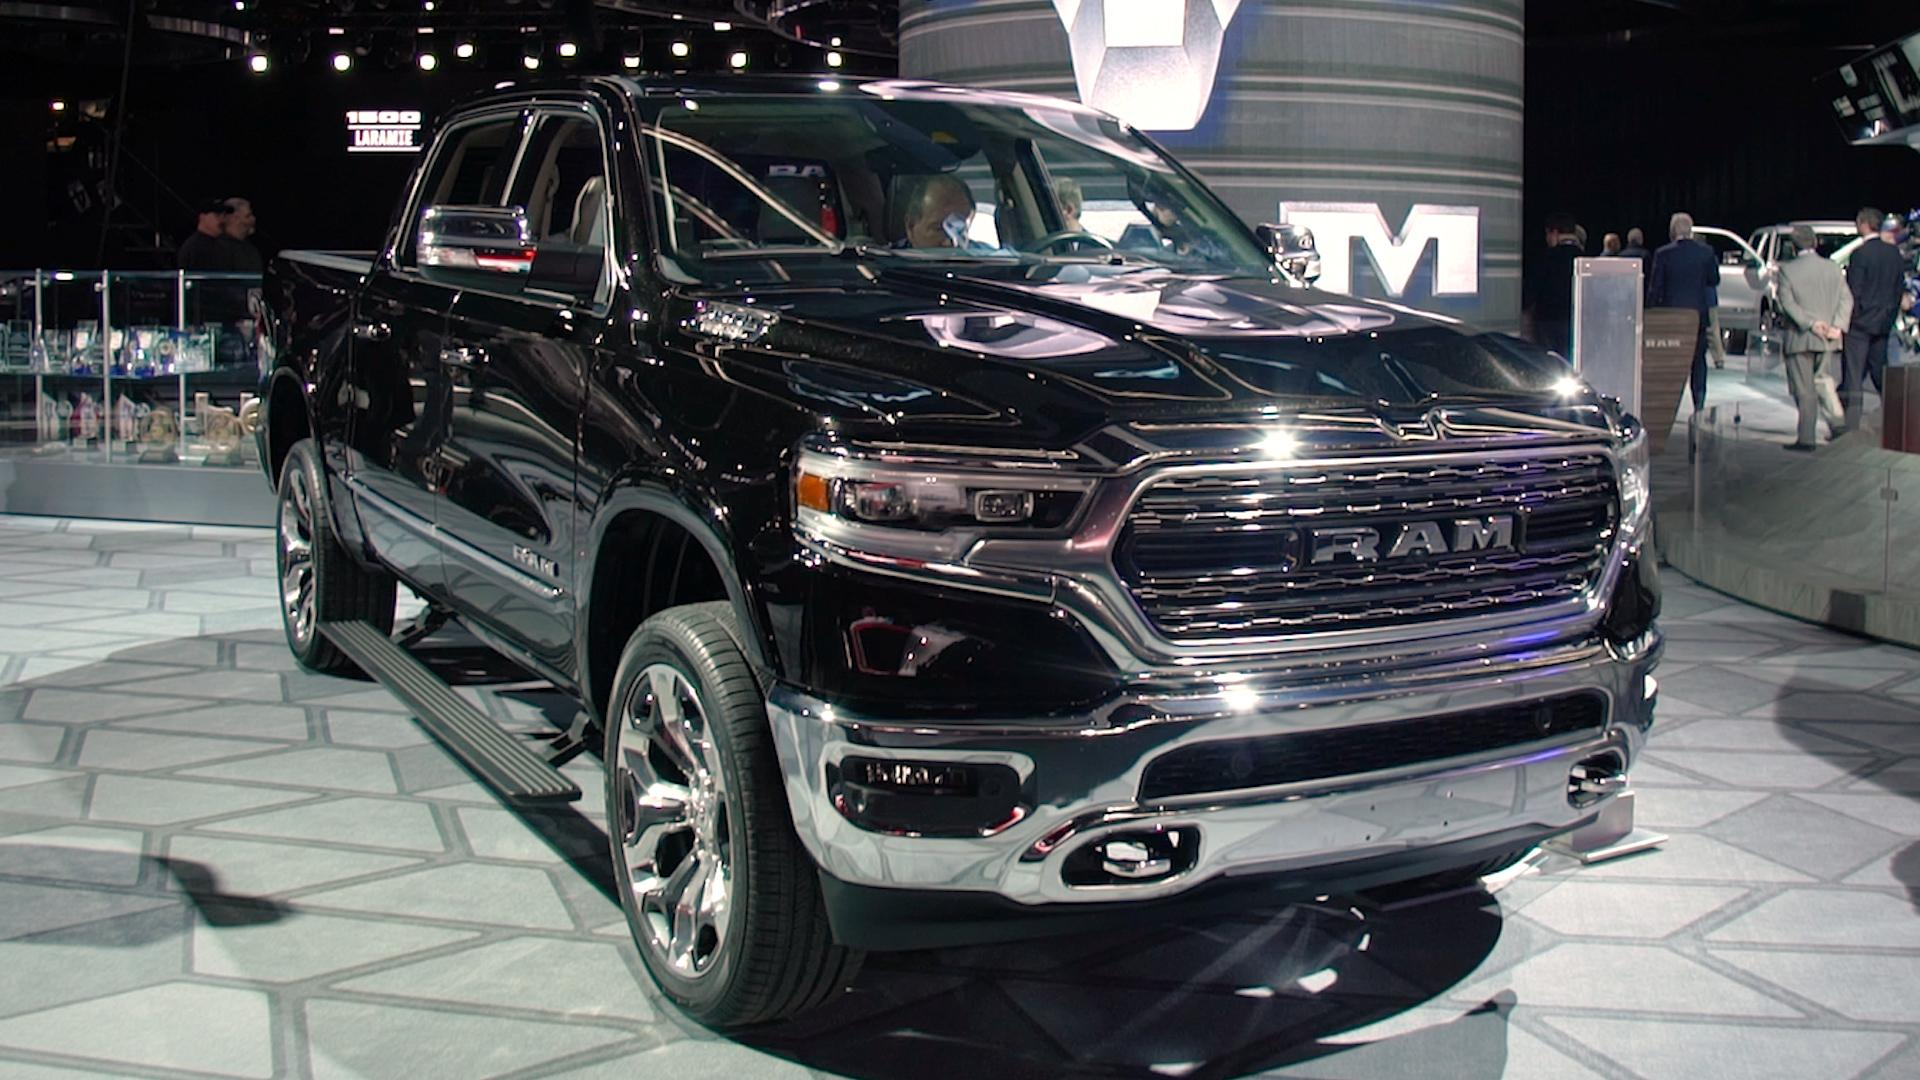 93 The Best 2019 Dodge Ram Truck Price Design and Review